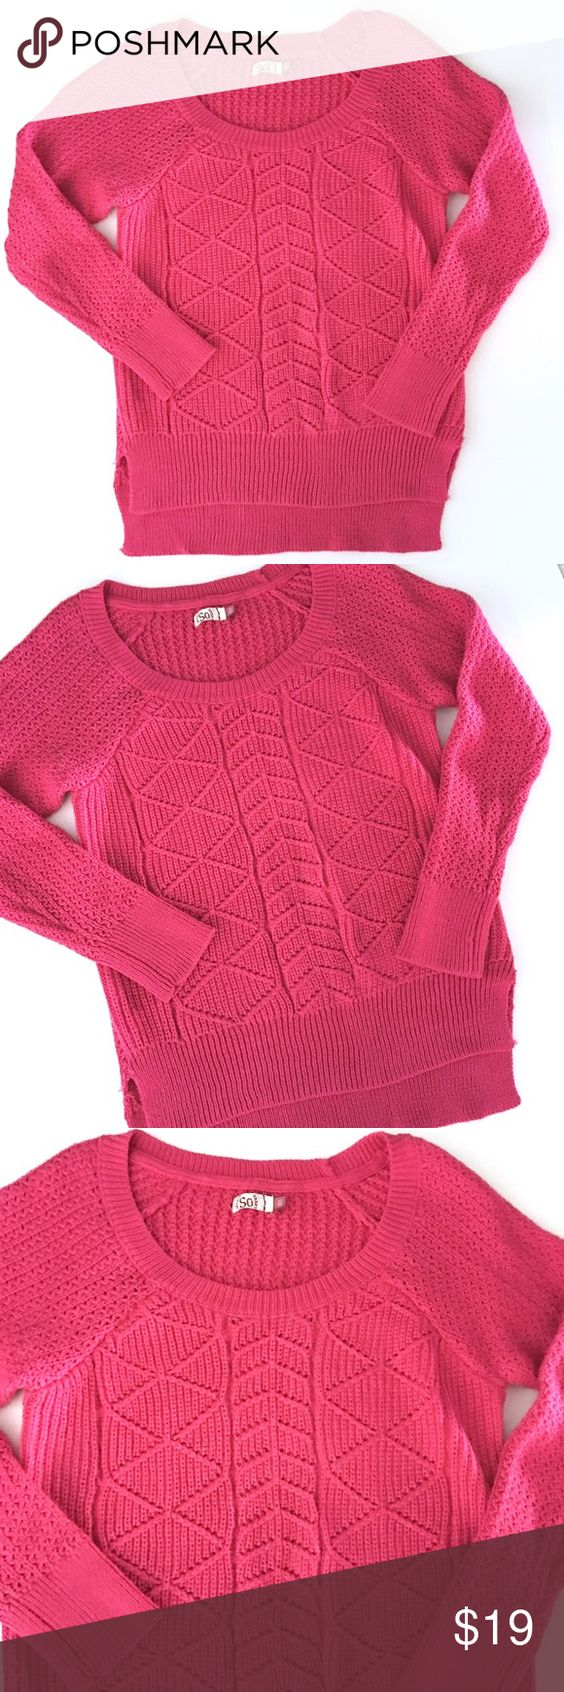 Pink Sweater with fun designs Pink Sweater with fun designs // sz XL // SO brand // 90% acrylic, 8% polyester, 2% other fiber // slightly longer in back // metallic shimmer thread throughout // Full length sleeves // scoop neck // non-smoking home // measurements available upon request // not my size. Can't model. // Offers Welcome! // 20% off 3+ Bundles // 10.29.19 SO  Sweaters Crew & Scoop Necks